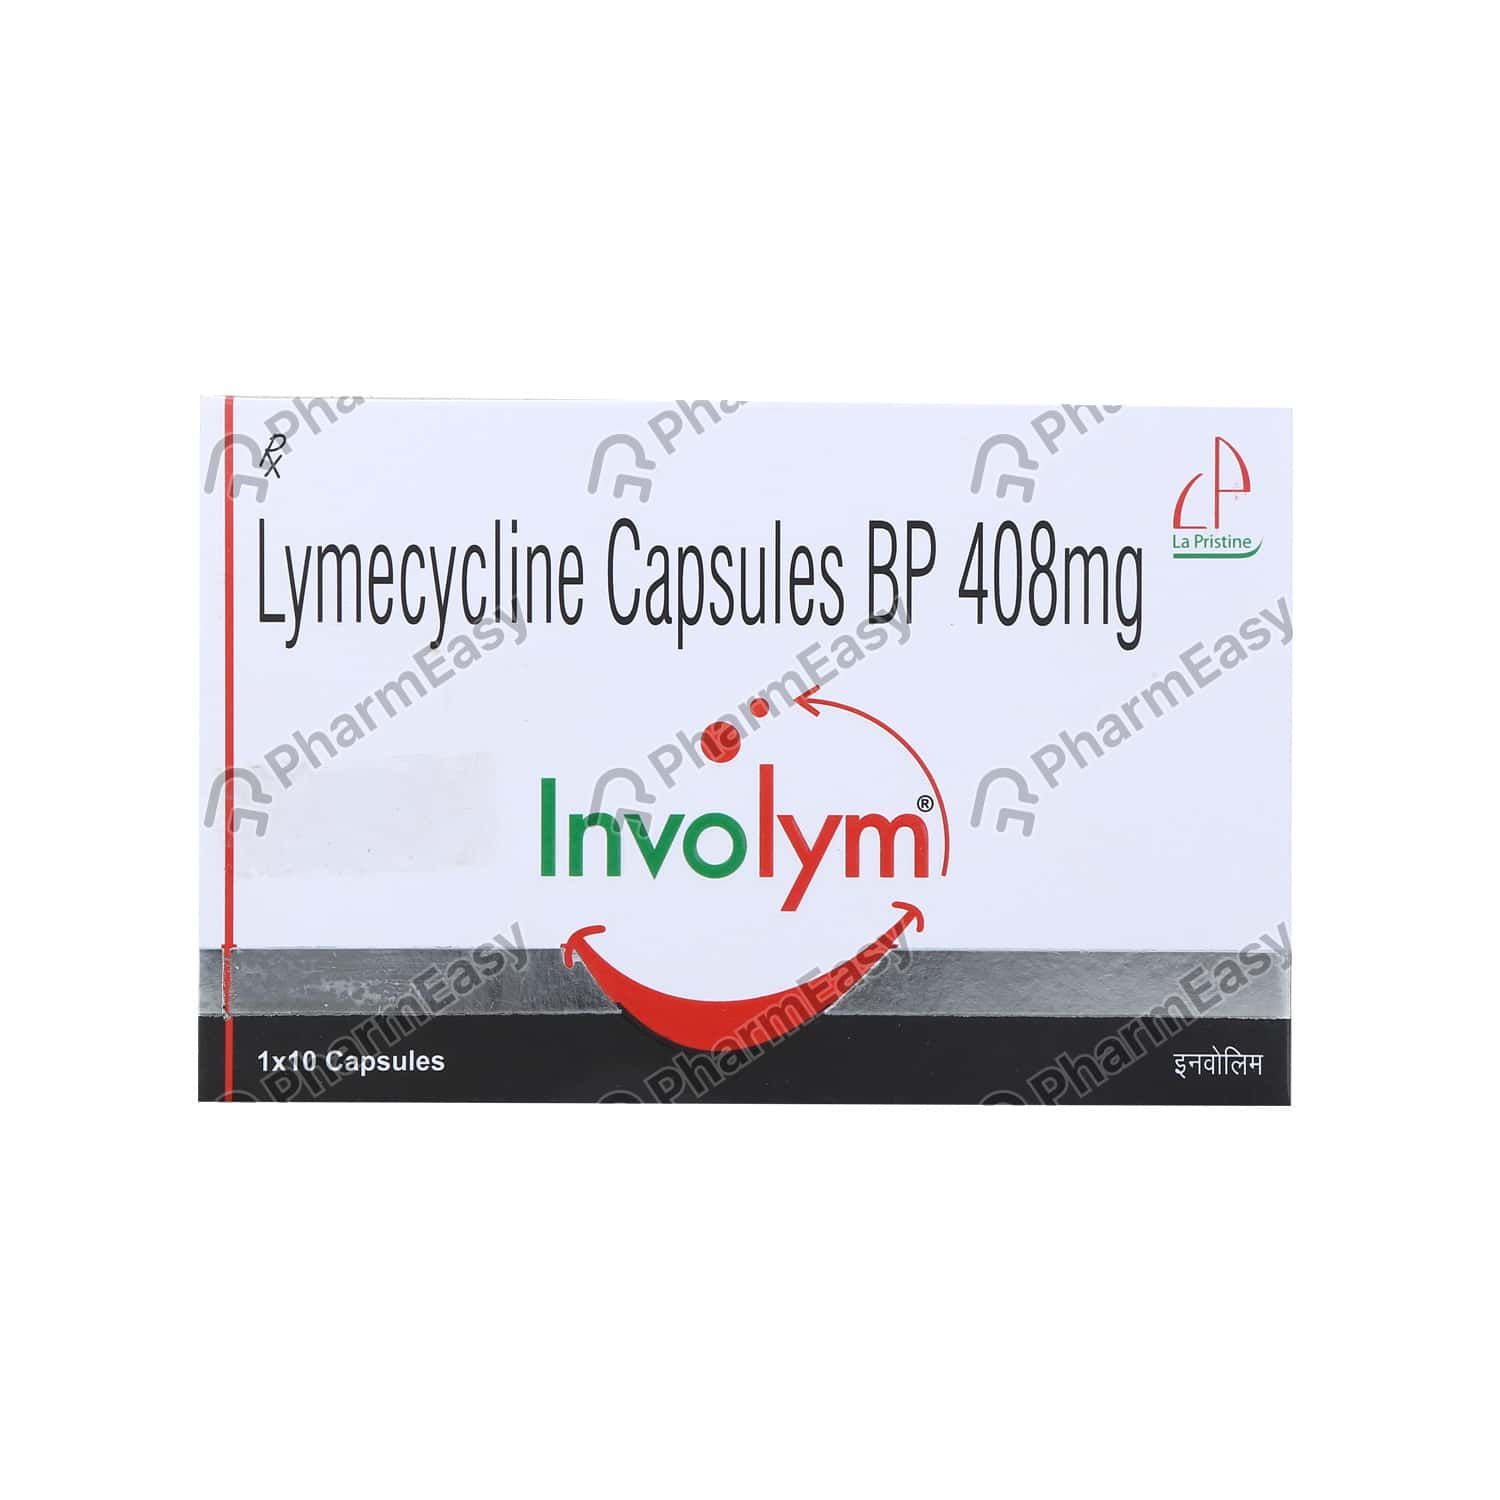 Involym 408mg Strip Of 10 Capsules